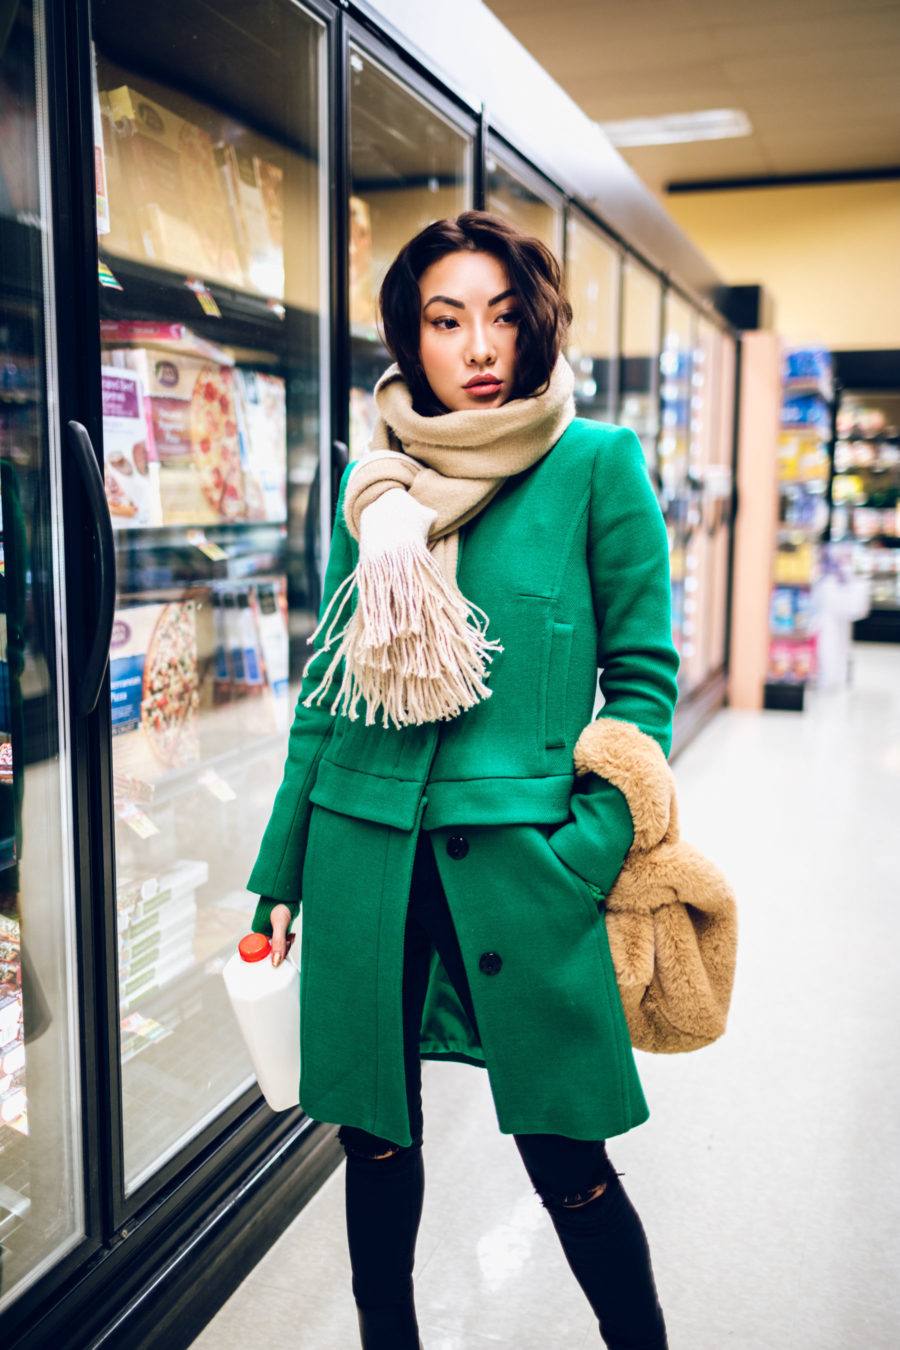 fashion blogger jessica wang wears green coat, chunky scarf and affordable accessories from Amazon // Jessica Wang - Notjessfashion.com